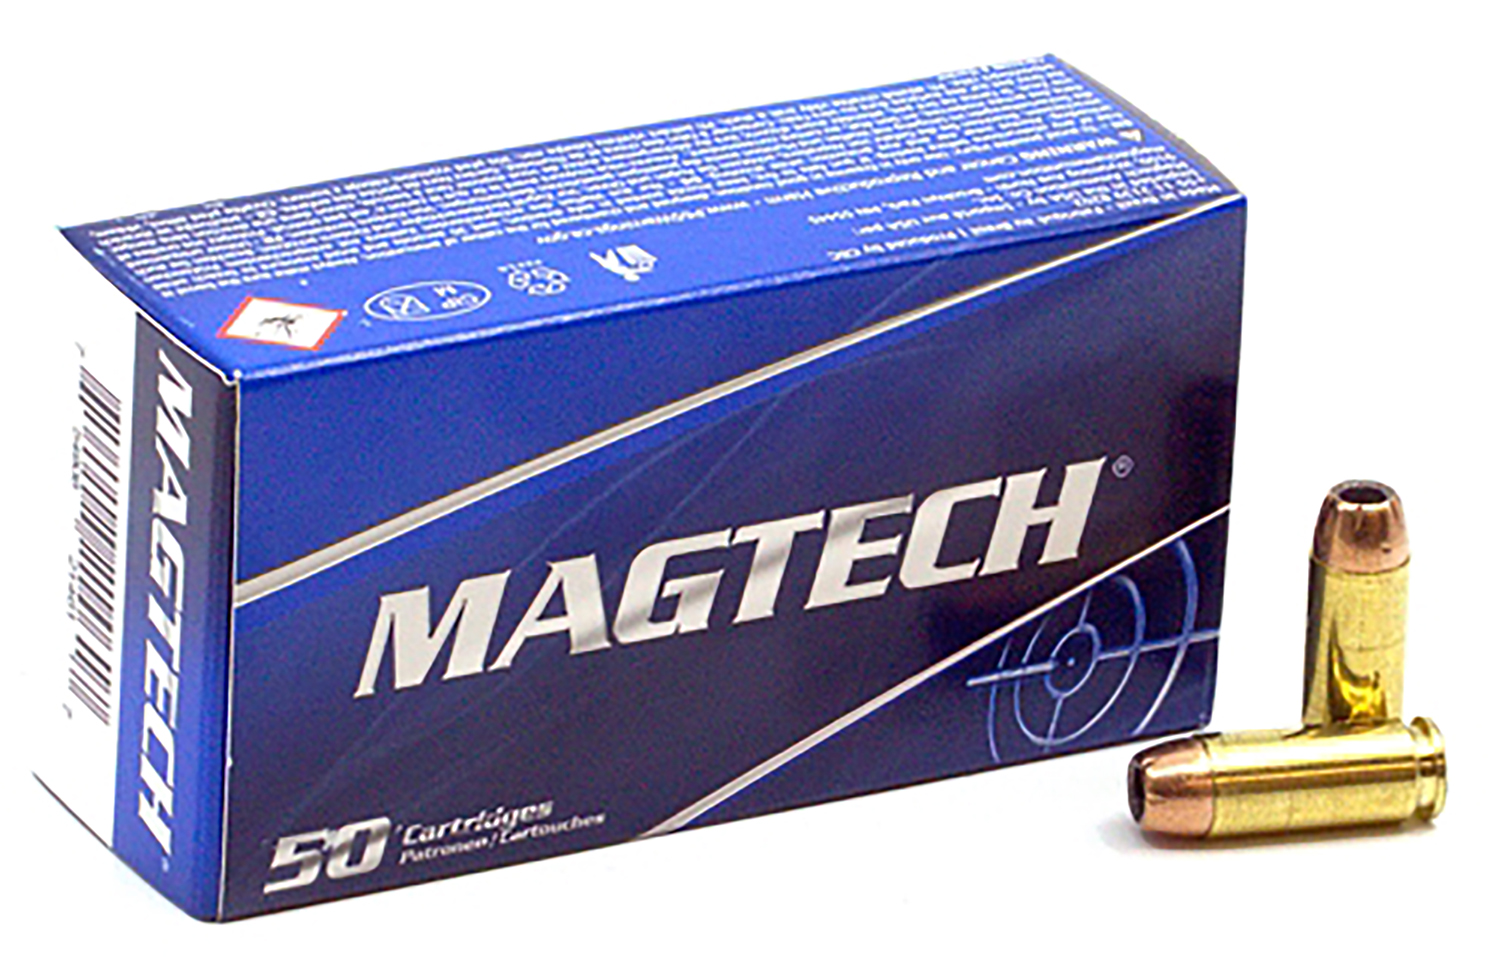 Magtech 10B Self Defense 10mm Auto 180 gr Jacketed Hollow Point (JHP) 50 Box